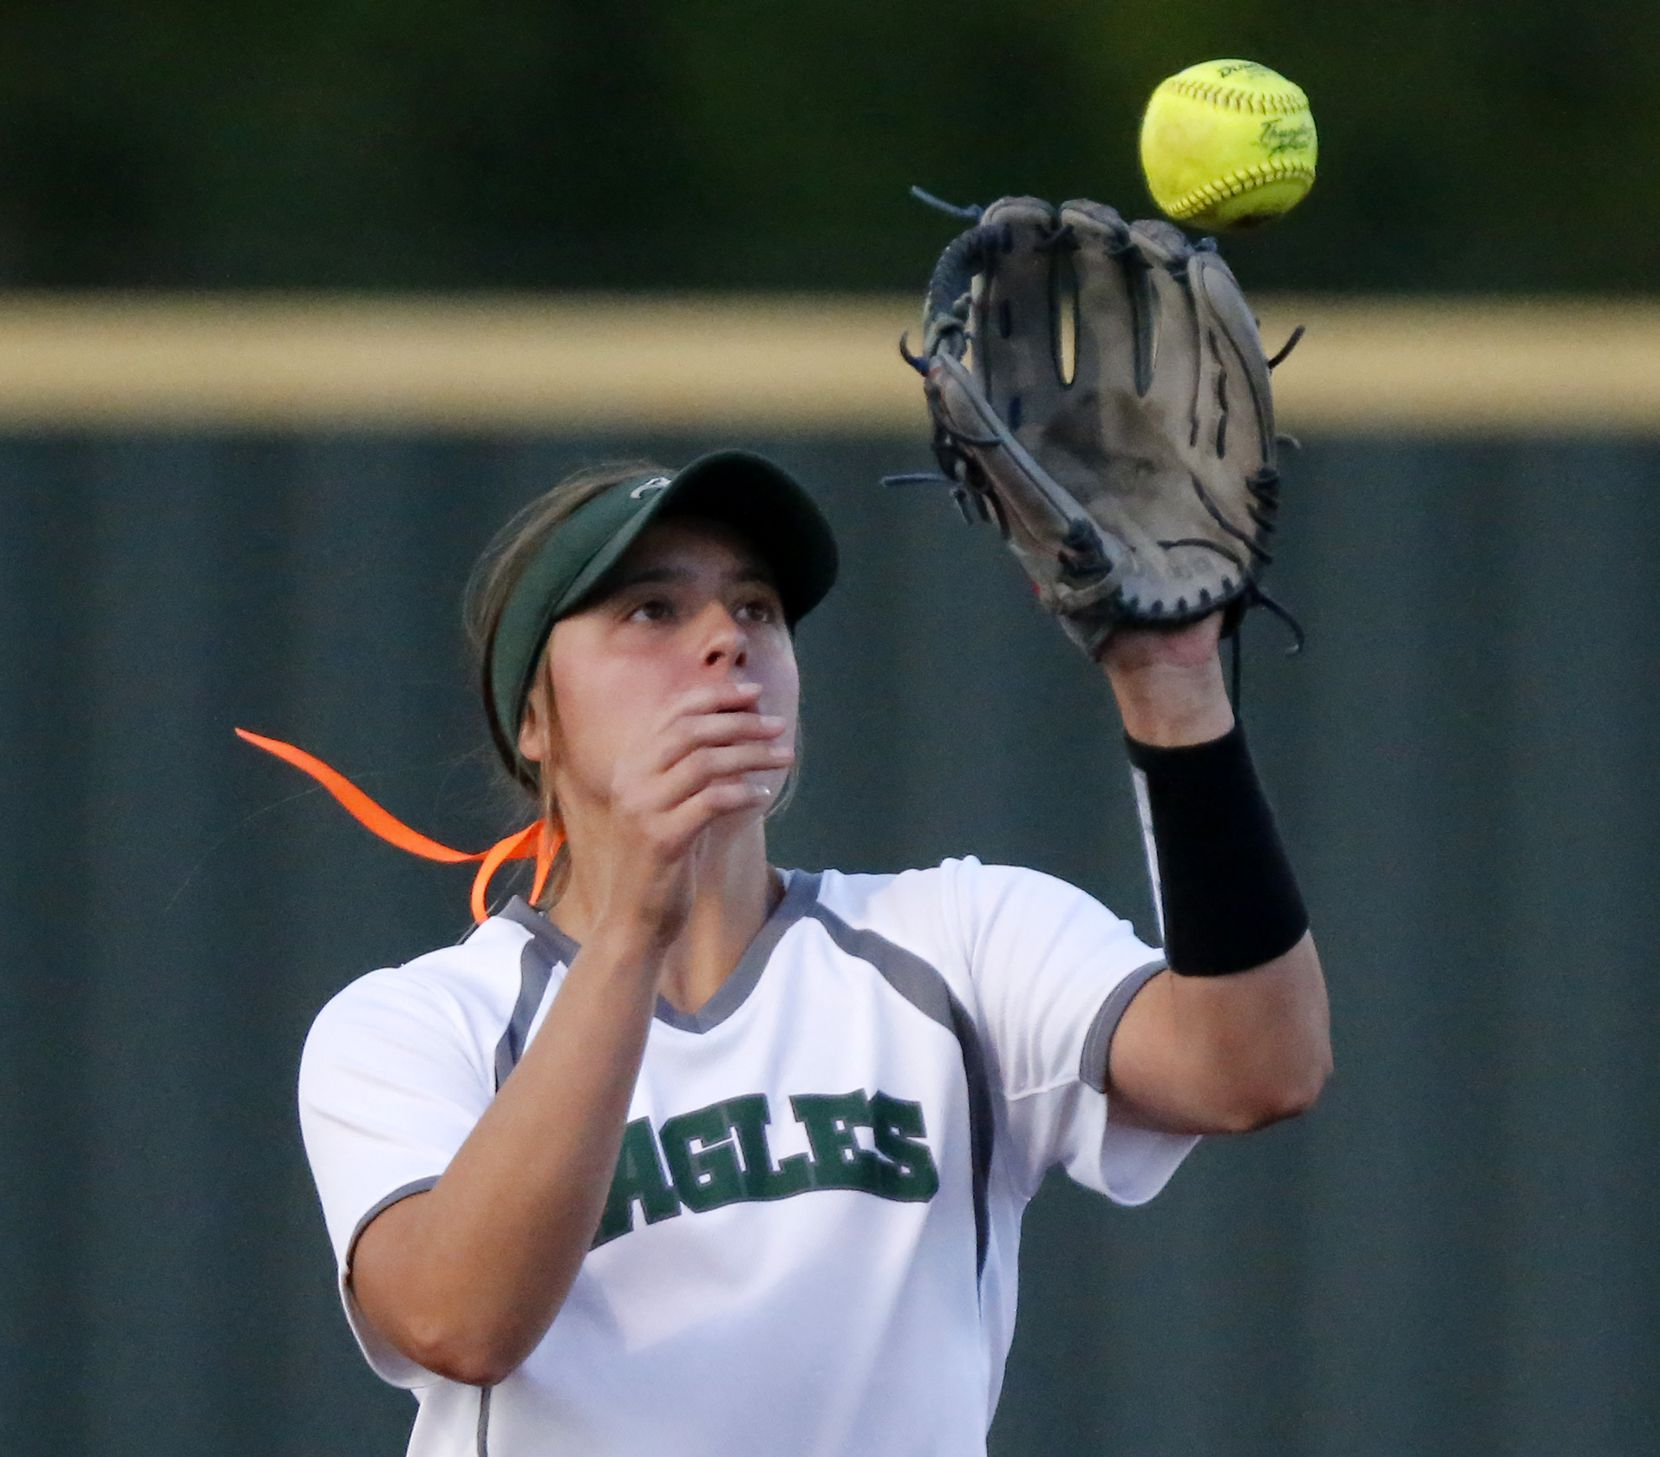 Prosper shortstop Abbey Beasley (11) fields a high bouncing ball in the third inning as Denton Guyer High School played Prosper High School in the second of a best-of-three Class 6A Region I softball quarterfinal at Prosper High School in Prosper on Thursday, May 13, 2021. (Stewart F. House/Special Contributor)